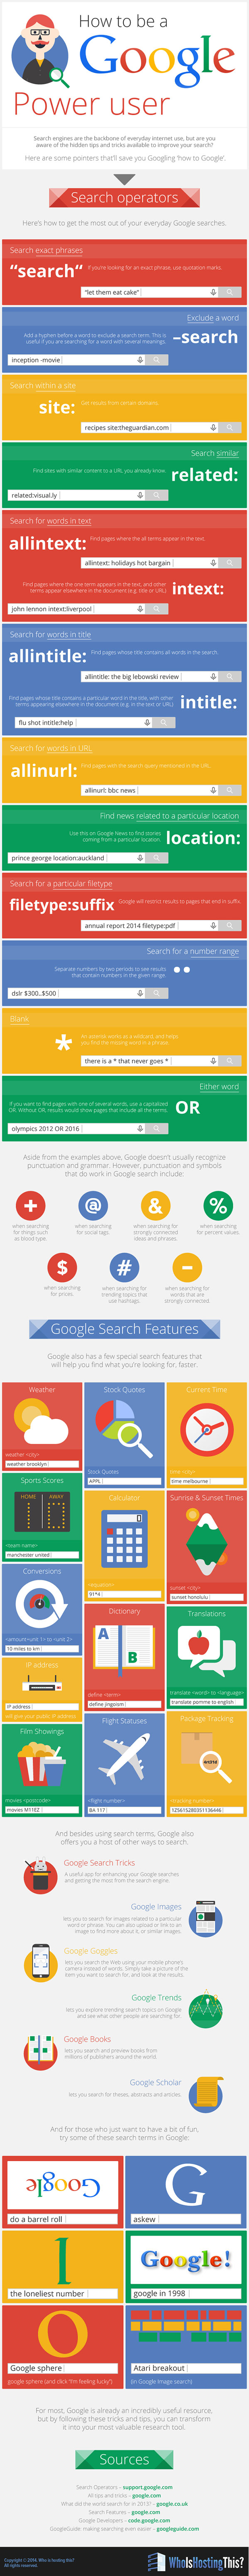 google-tips-infographic